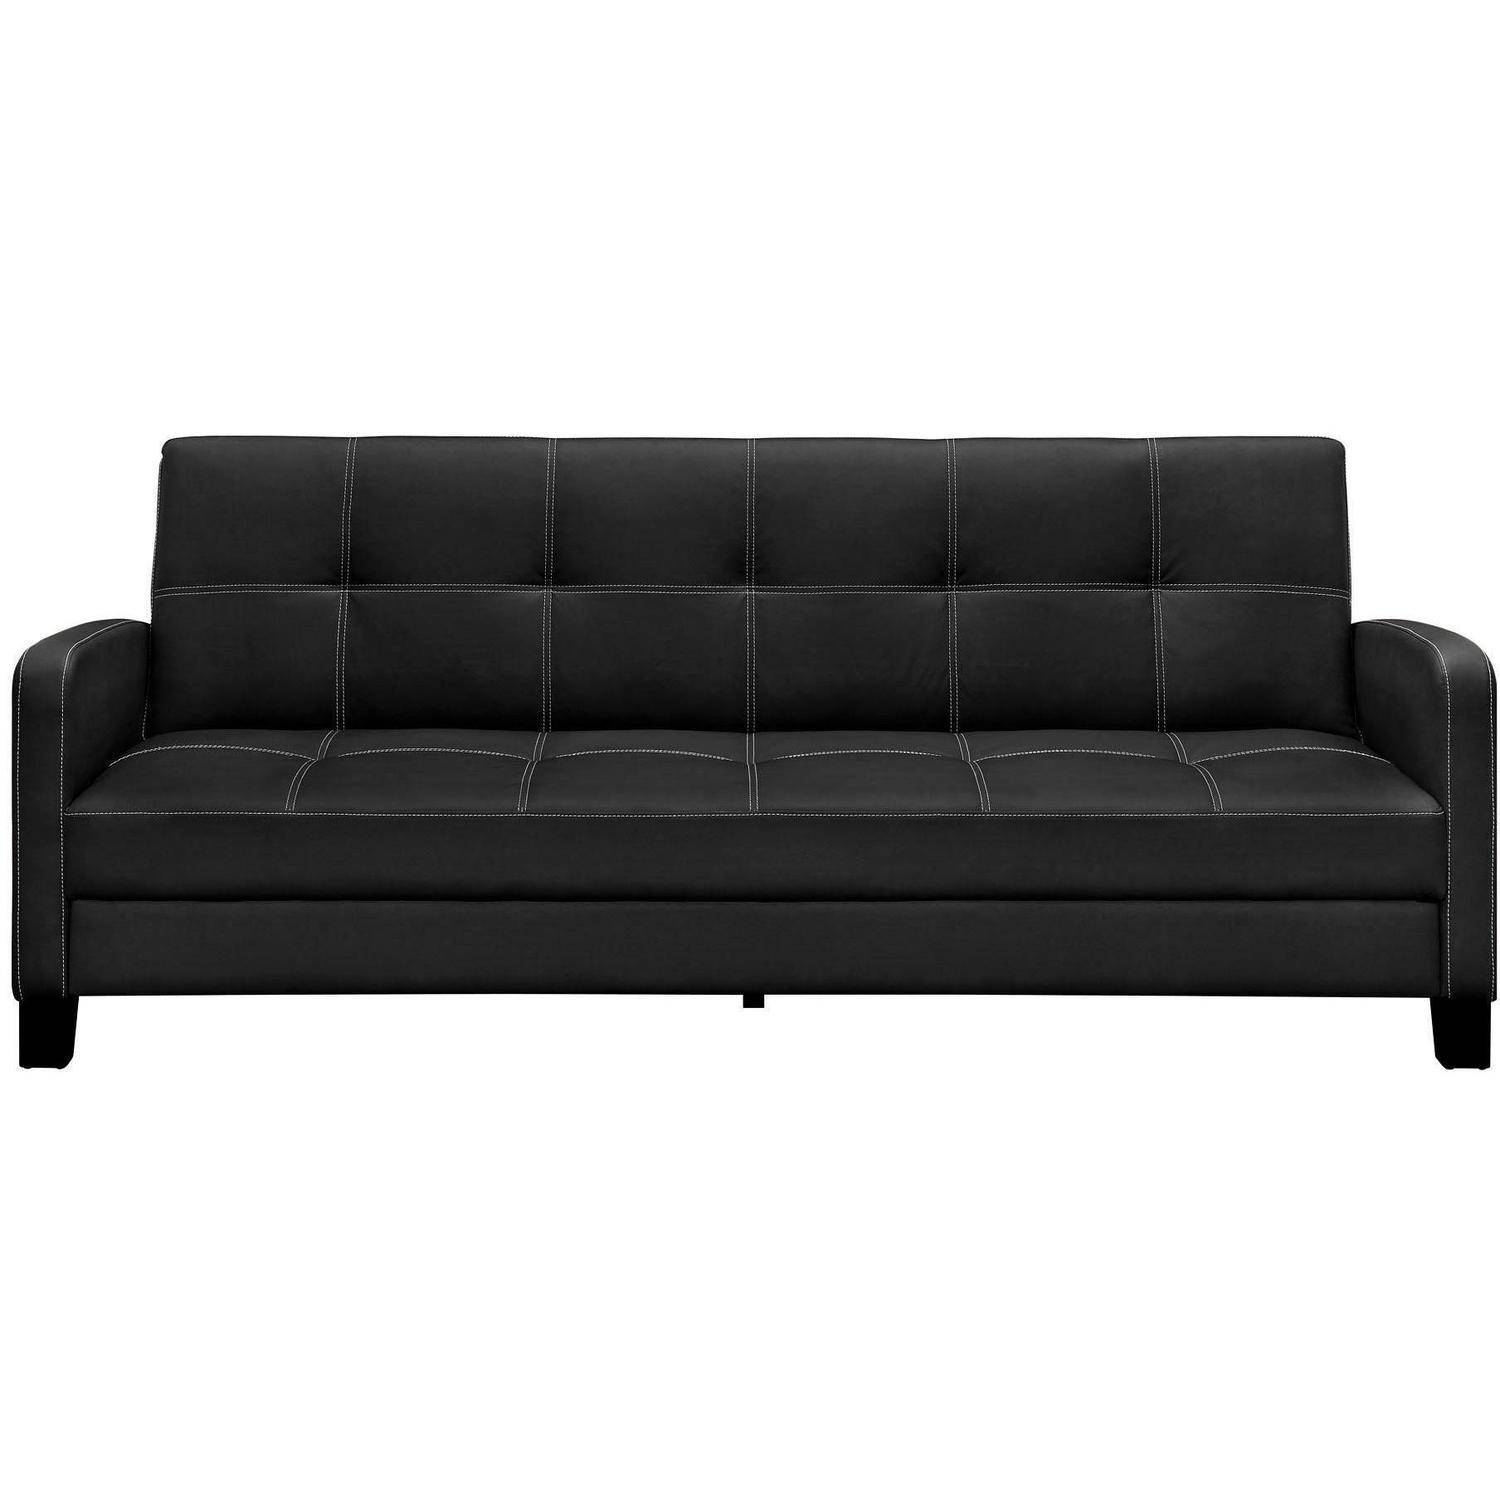 DHP Delaney Sofa Sleeper, Multiple Colors   Walmart.com